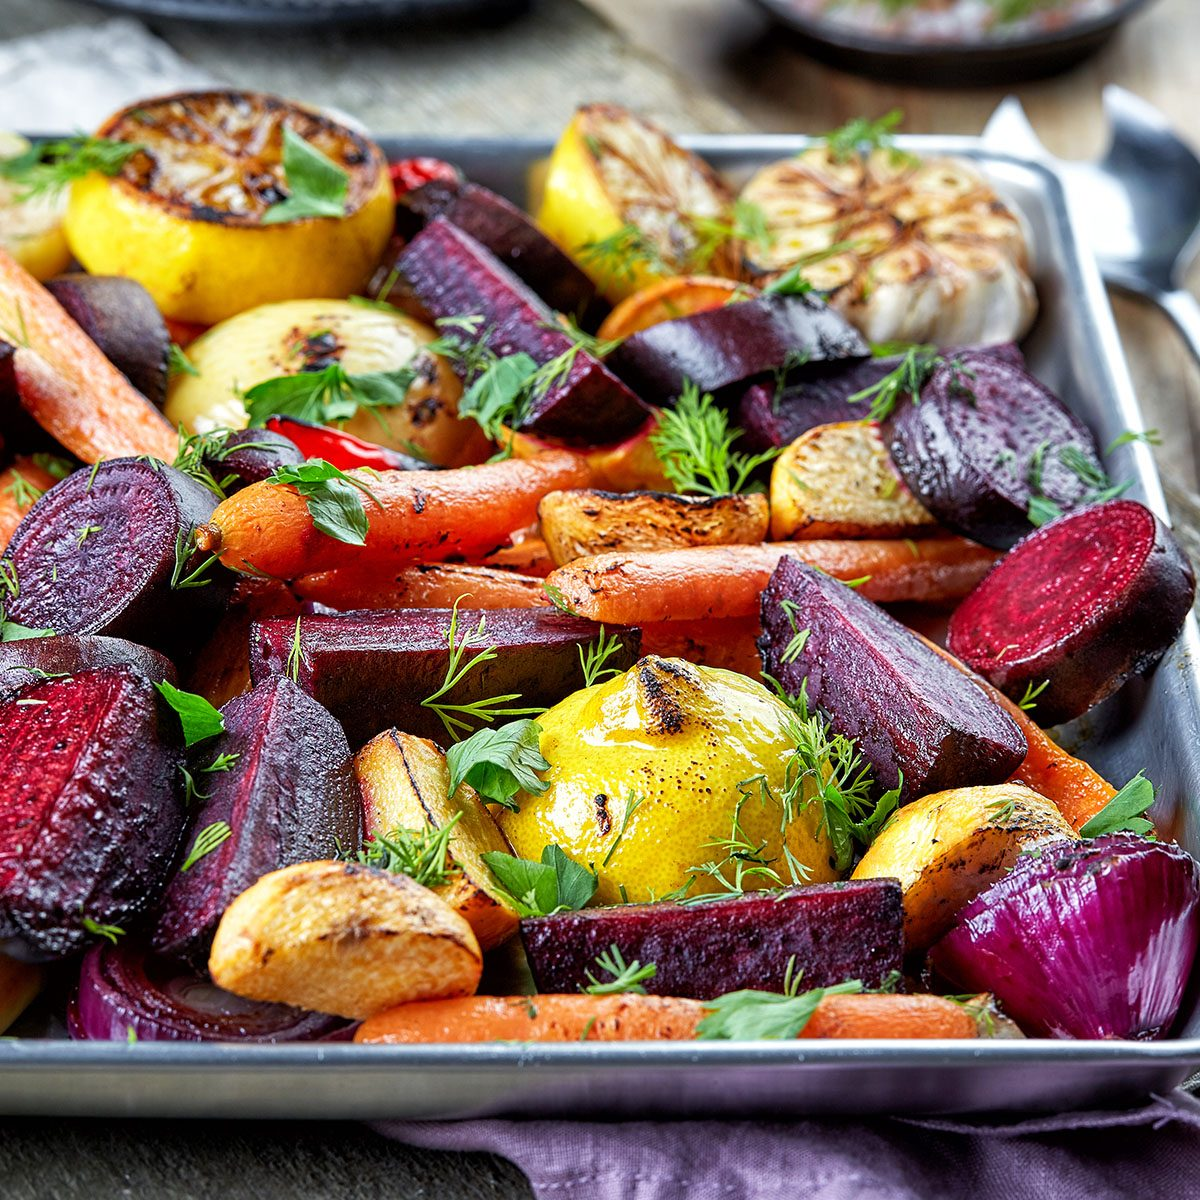 Various roasted fruits and vegetable